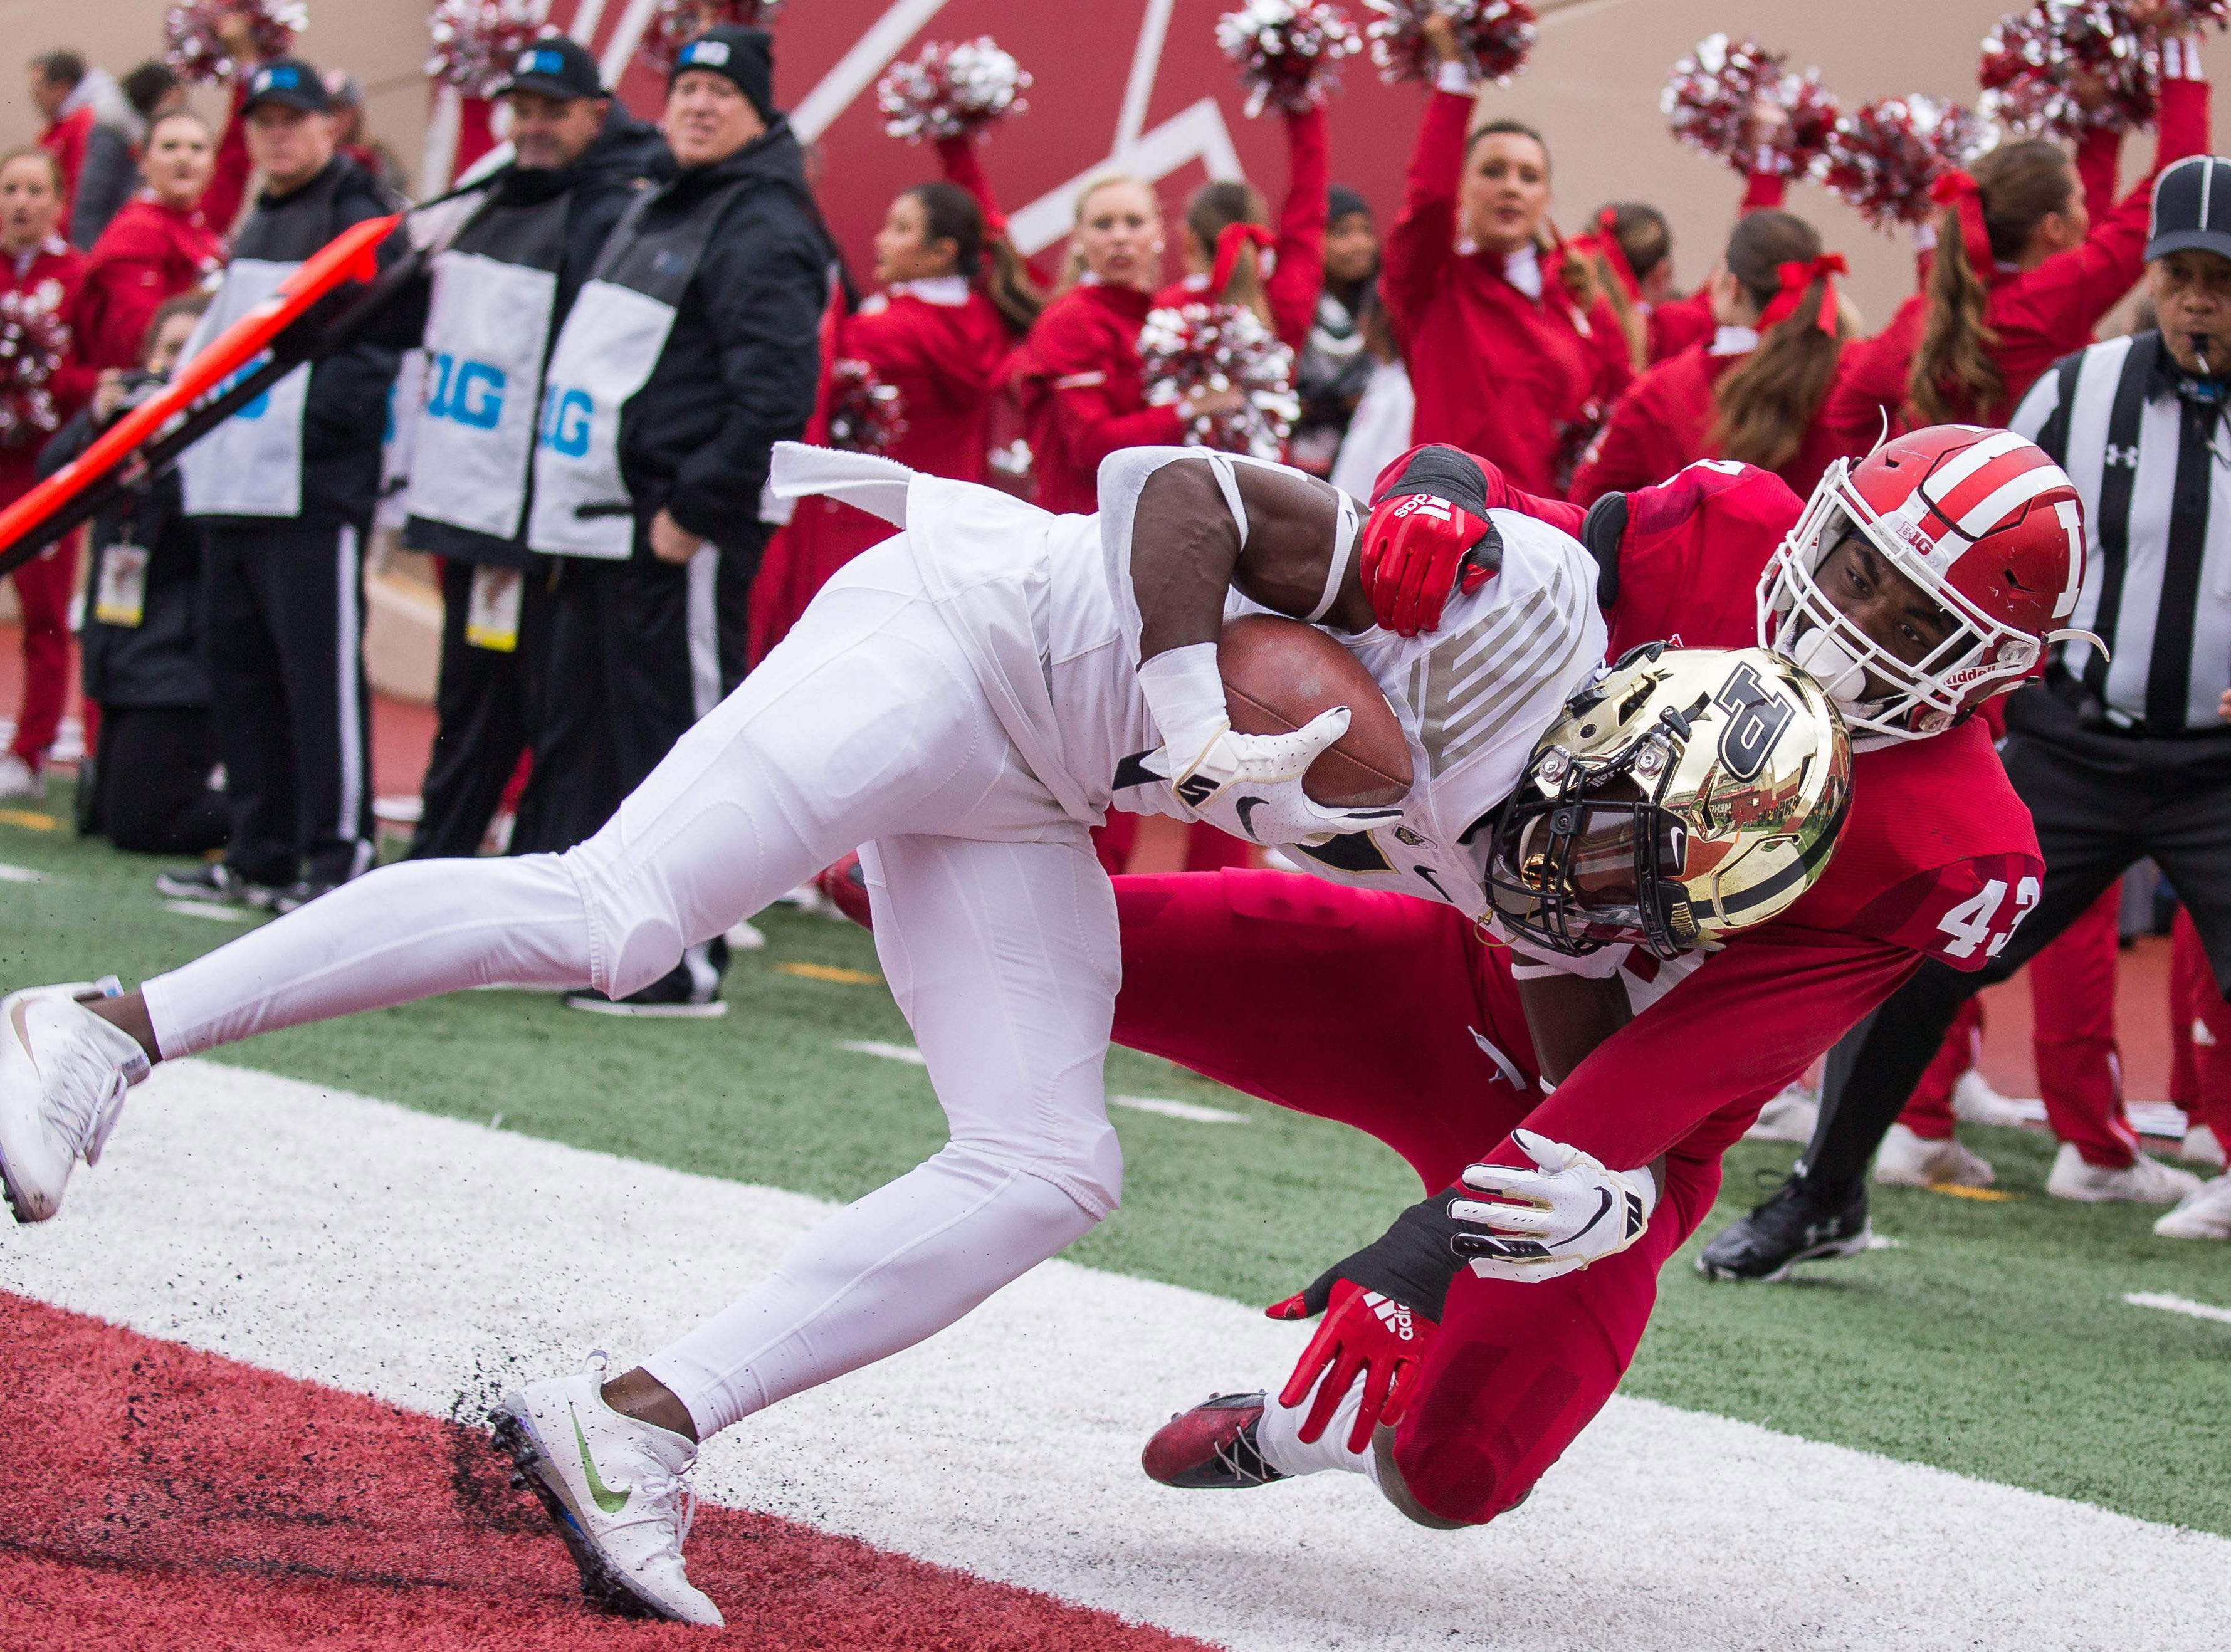 Nov 24, 2018; Bloomington, IN, USA; Purdue Boilermakers wide receiver Isaac Zico (7) catches a touchdown against Indiana Hoosiers linebacker Dameon Willis Jr. (43) in the first quarter at Memorial Stadium. Mandatory Credit: Trevor Ruszkowski-USA TODAY Sports